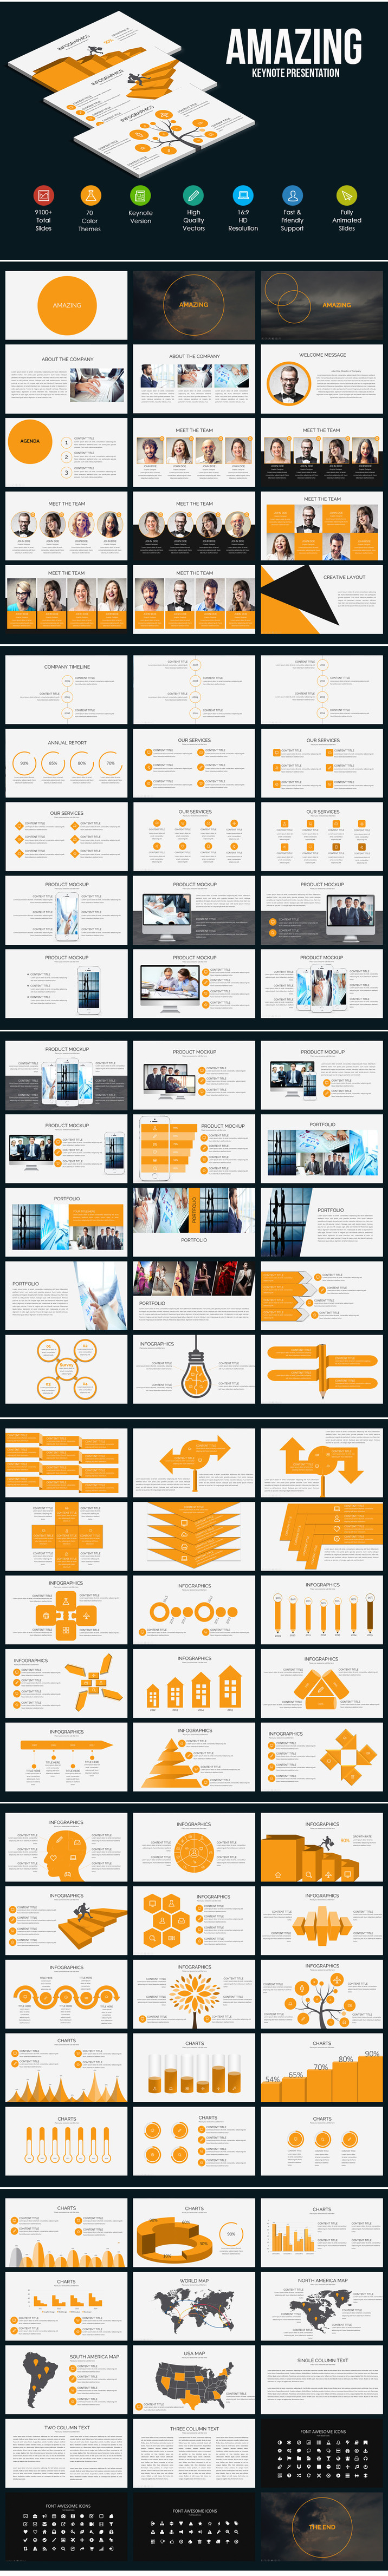 amazing_keynote_template_by_creative_slides